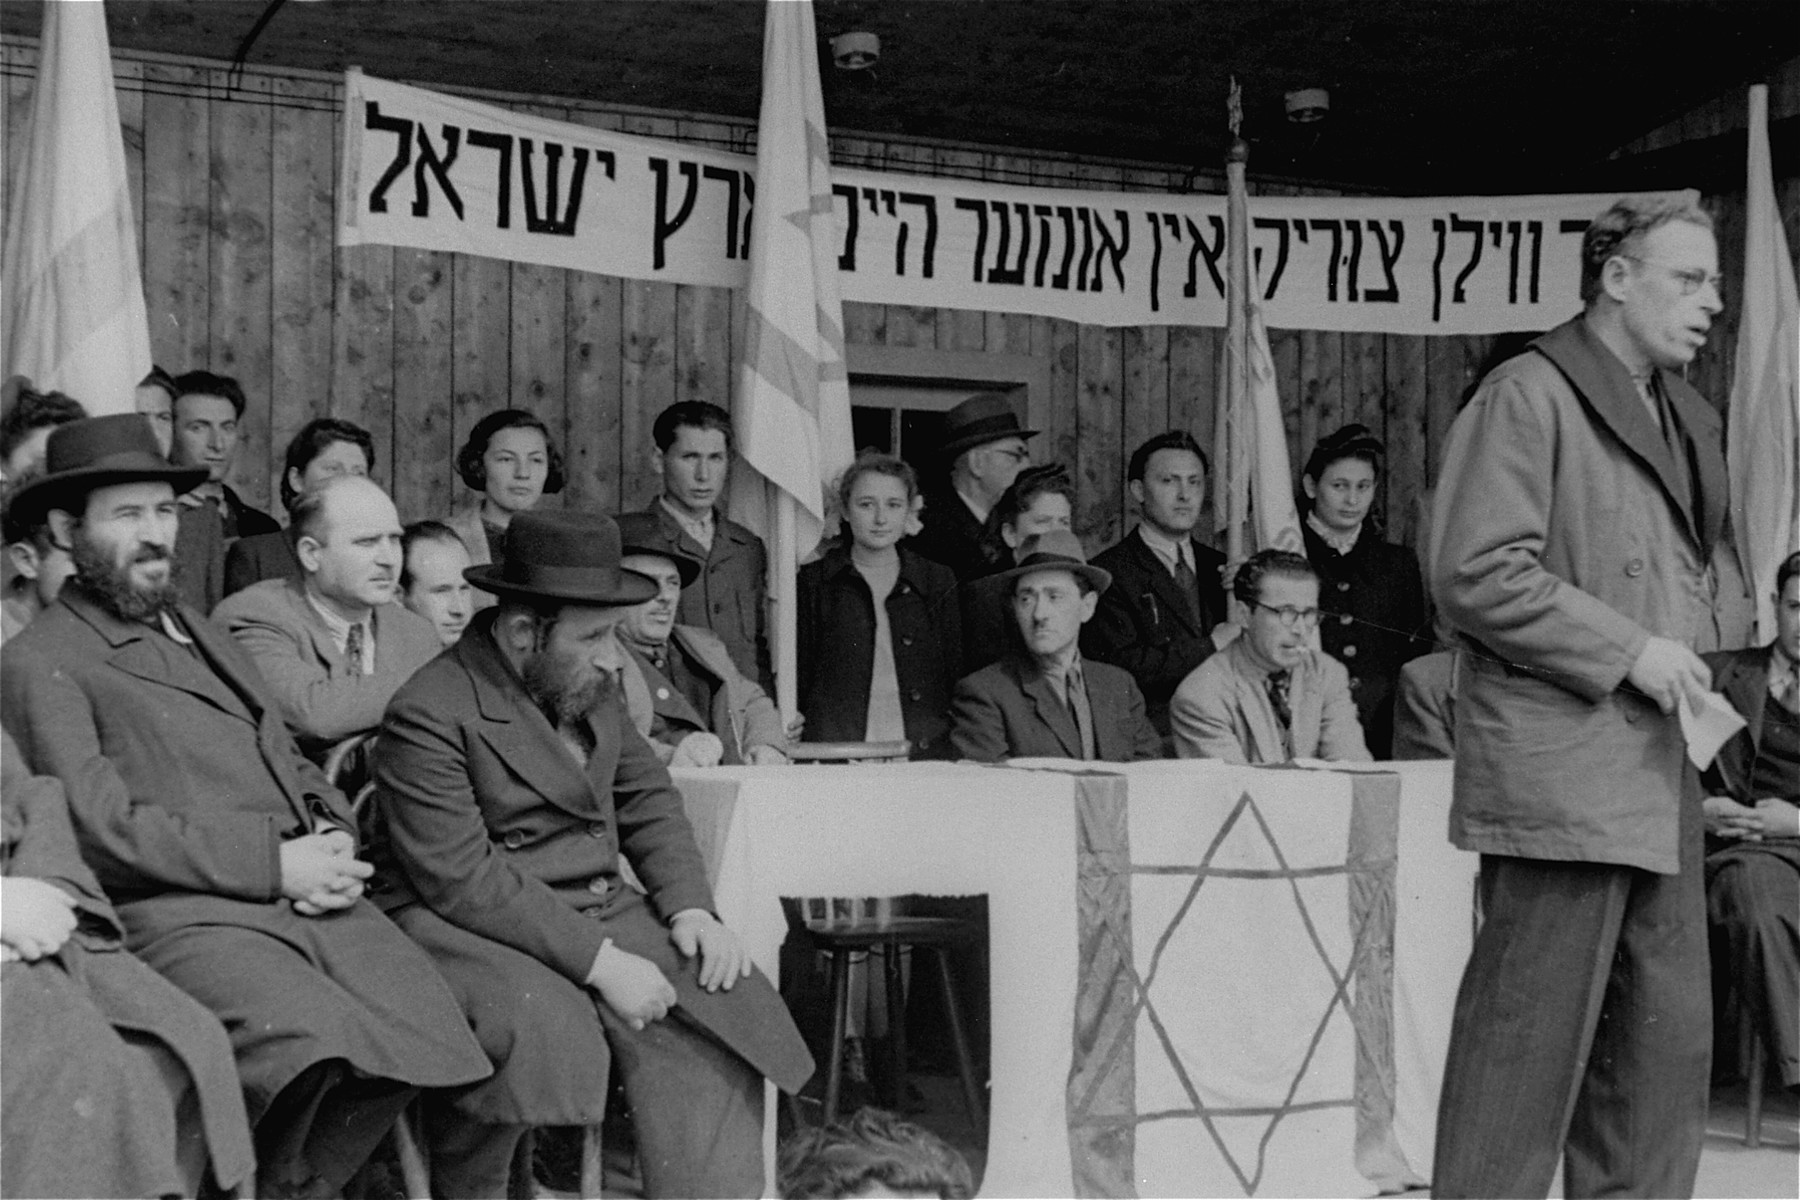 """Neu Freimann DP camp leader Siroka delivers a speech at a demonstration calling for unrestricted Jewish immigration to Palestine.  The text of the Yiddish banner reads: """"We want to go back to our home in the Land of Israel."""""""